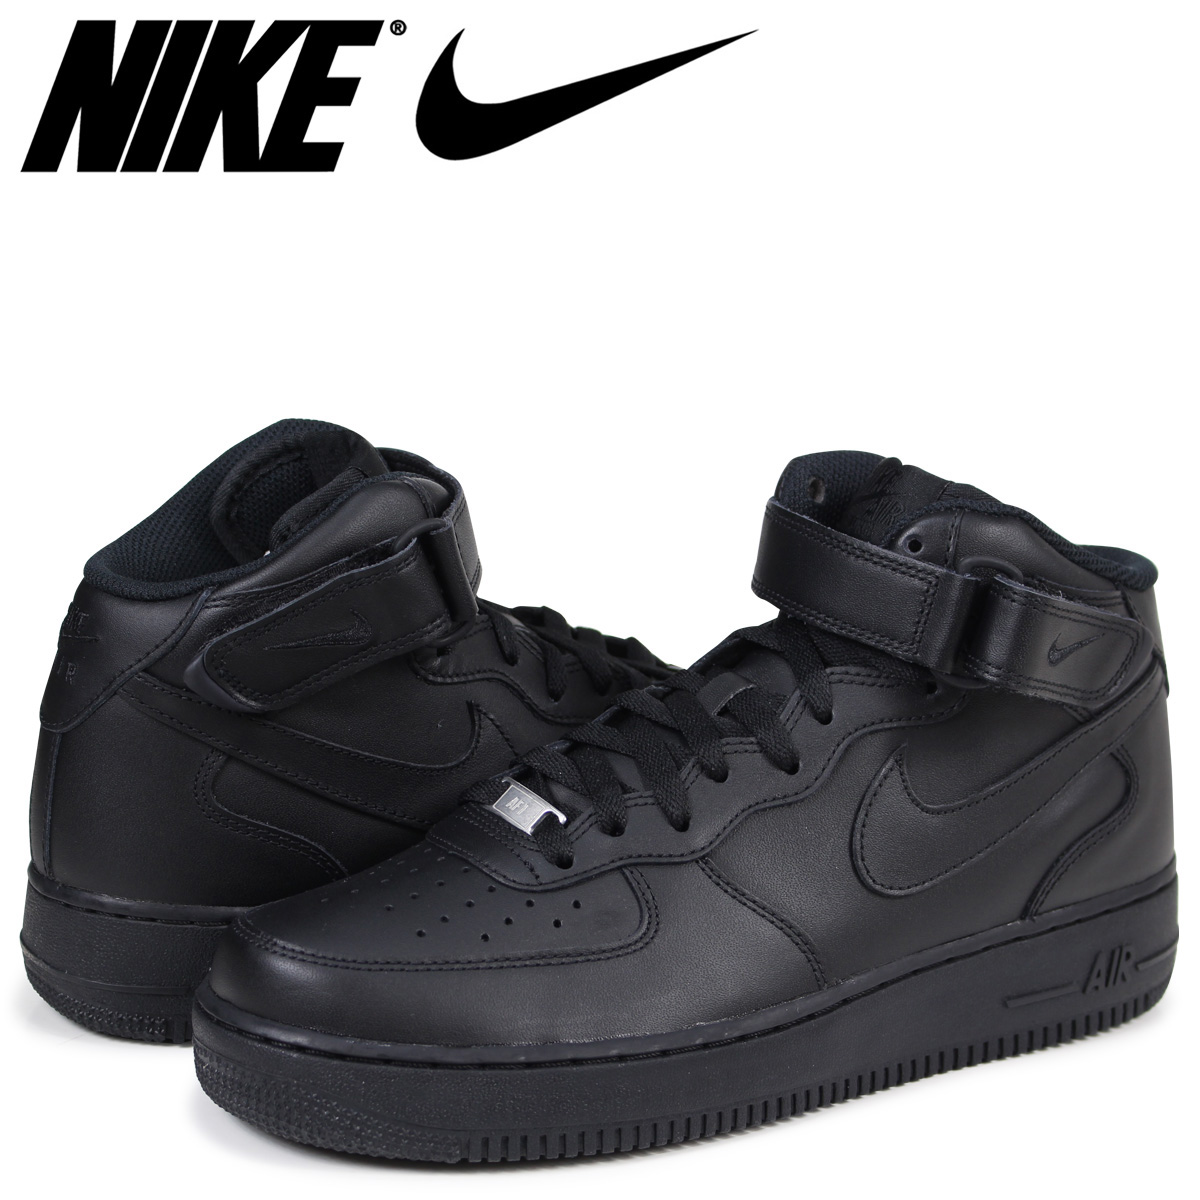 sale retailer c9405 e8d36 NIKE AIR FORCE 1 MID 07 Nike air force 1 sneakers men black 315,123-001